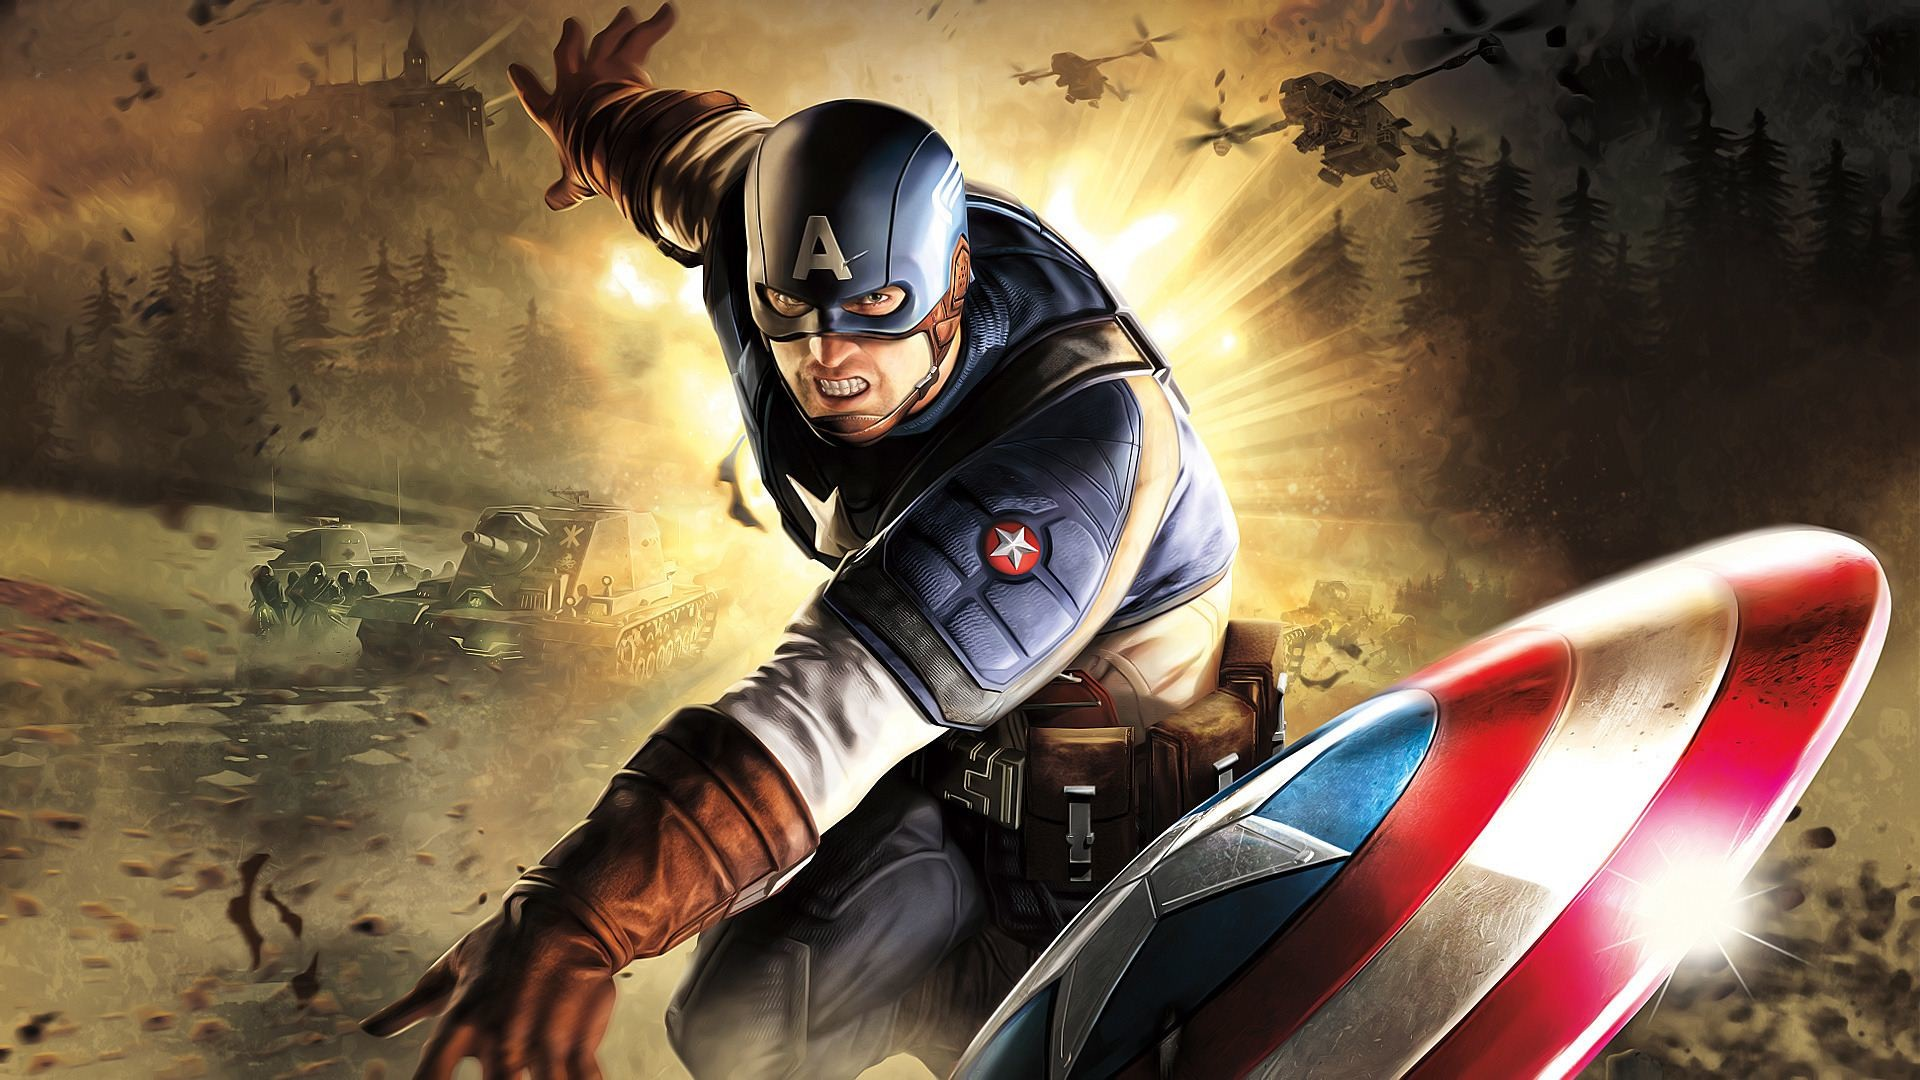 Captain america wallpapers 1920x1080 74 images - Captain america hd images download ...